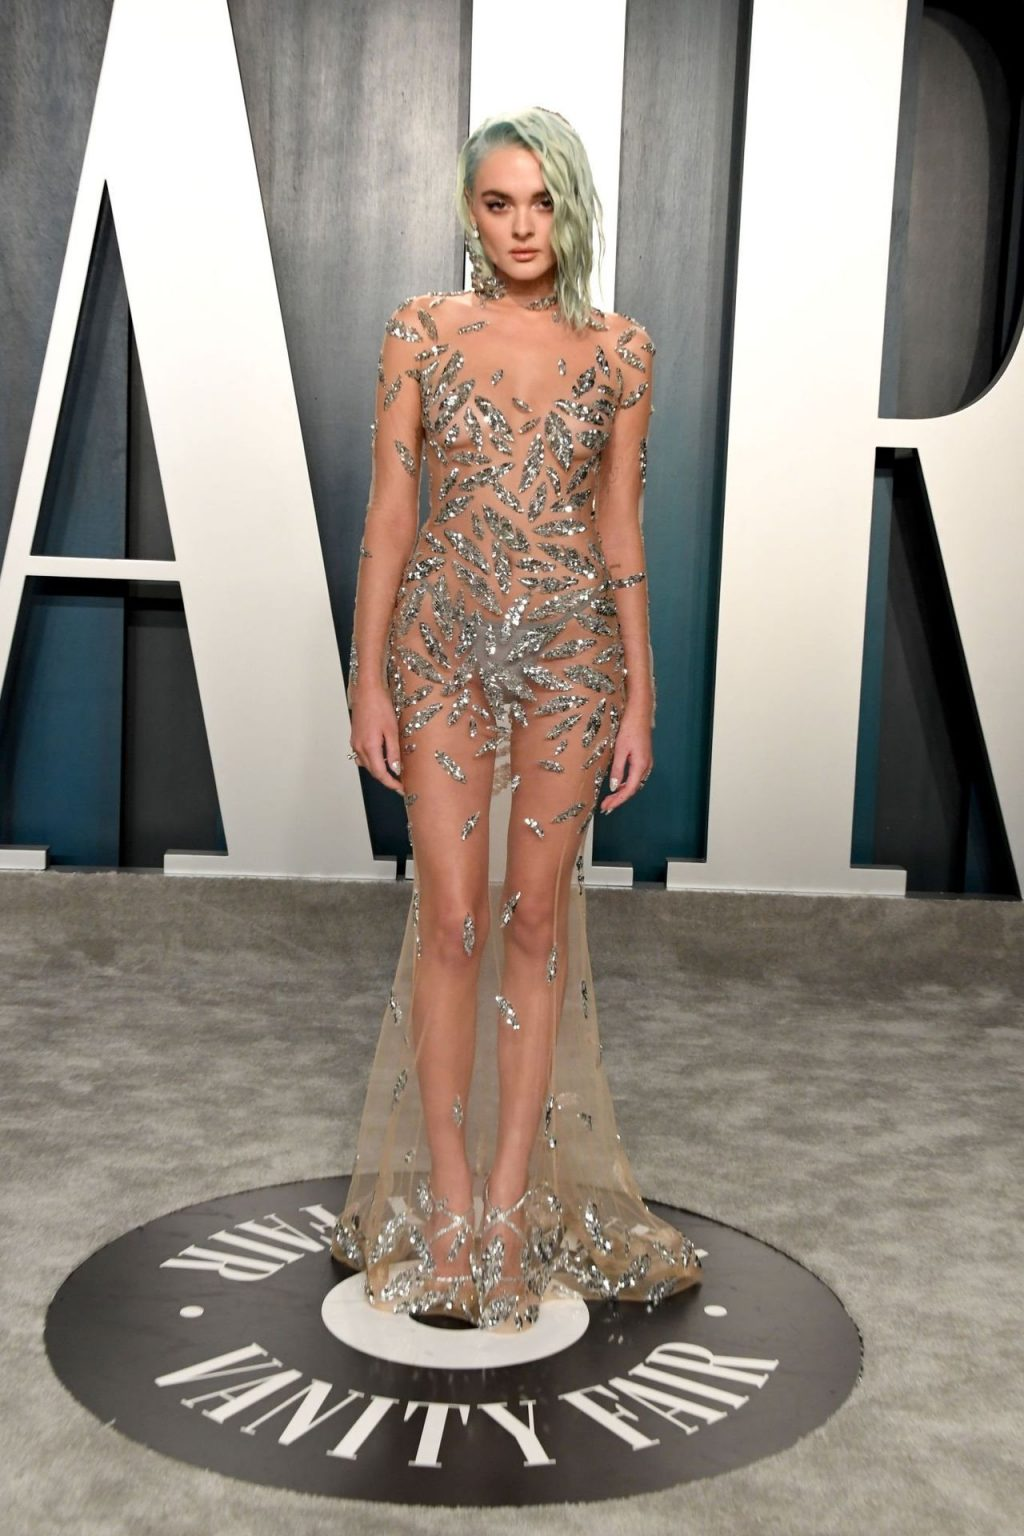 Charlotte Lawrence Stuns in a See-Through Dress at the Vanity Fair Oscar Party (39 Photos)